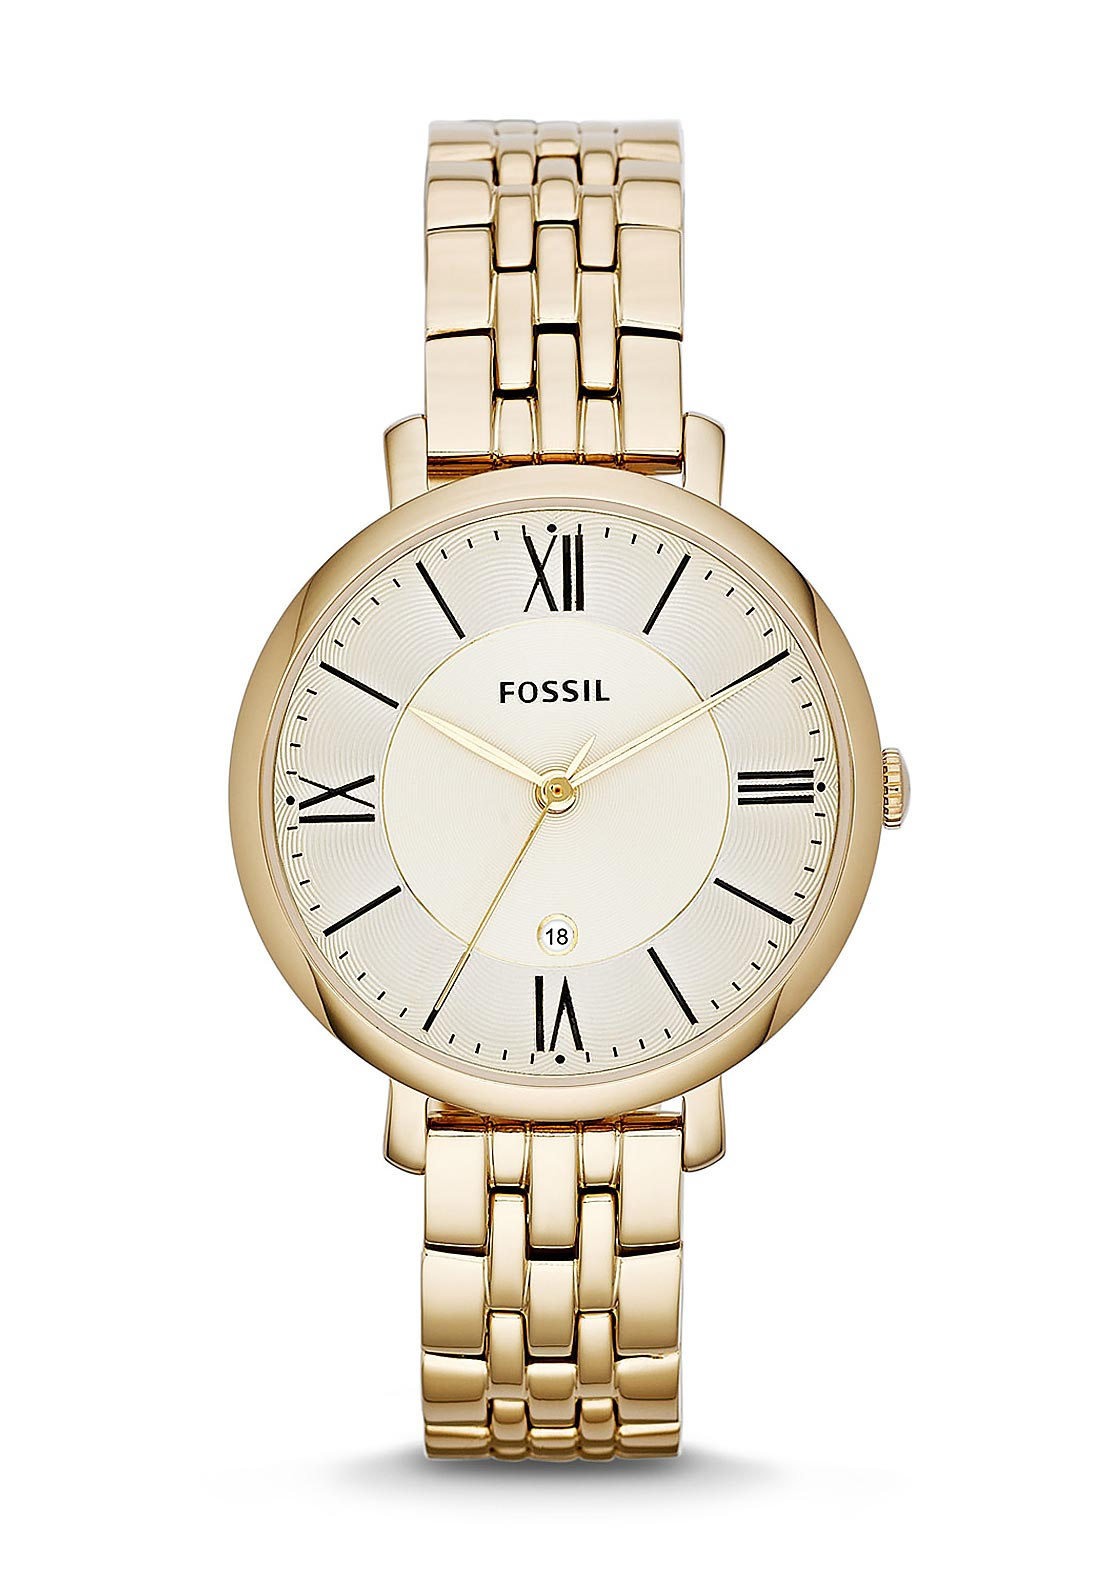 Fossil Womens Jacqueline Stainless Steel Watch, Gold